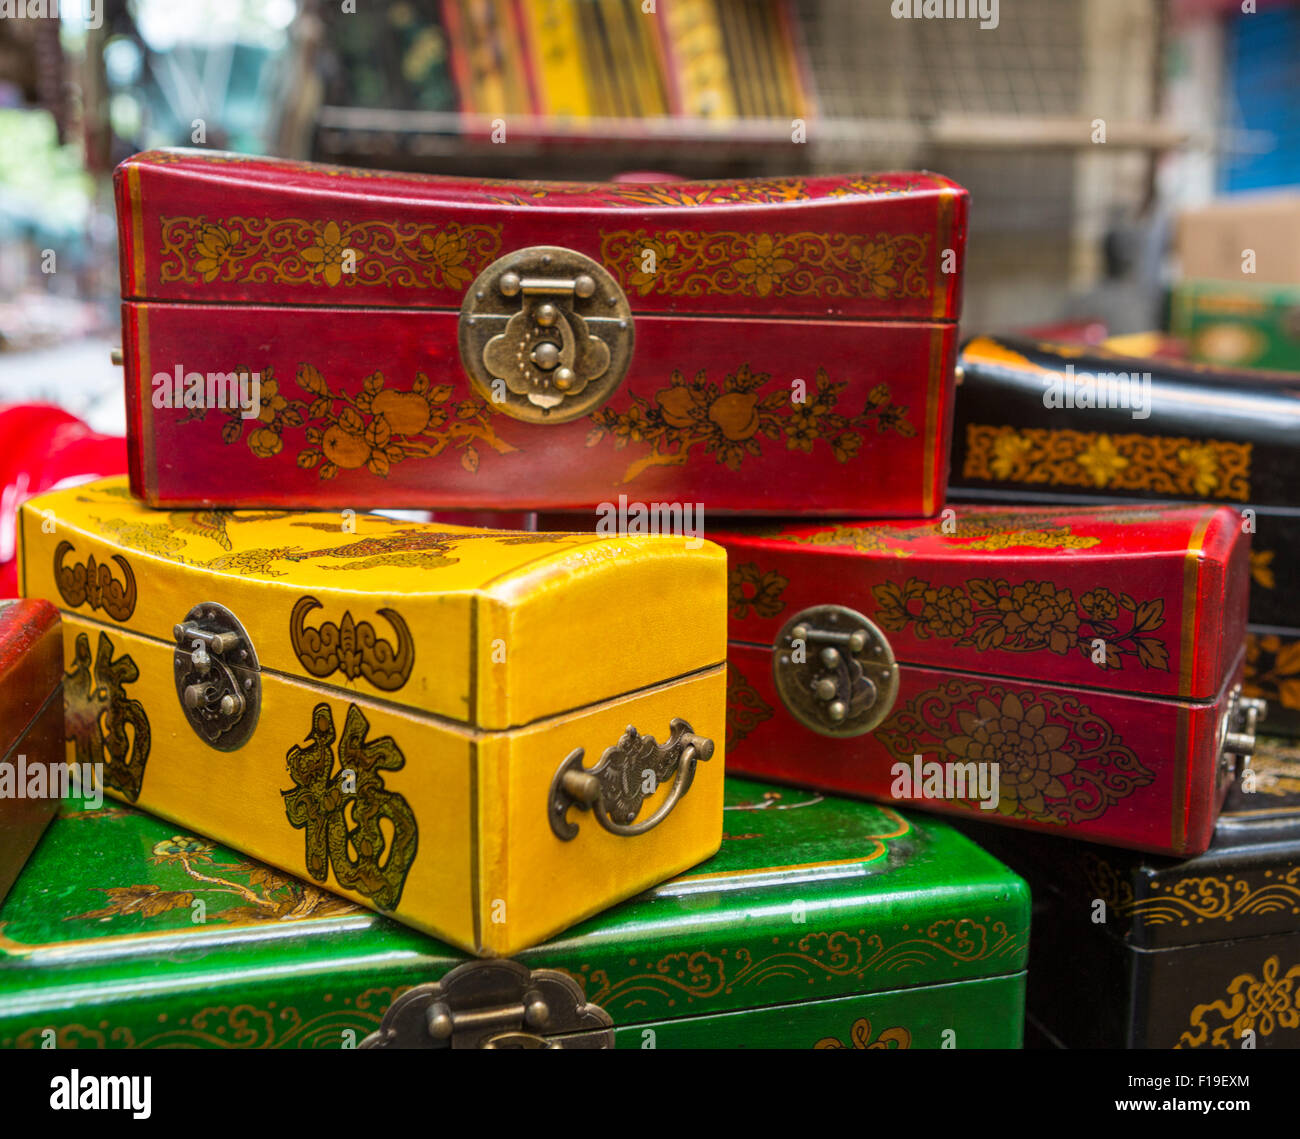 Colorful laquered boxes for sale on Chongde Rd in the Dongtai flea market in Shanghai, China - Stock Image